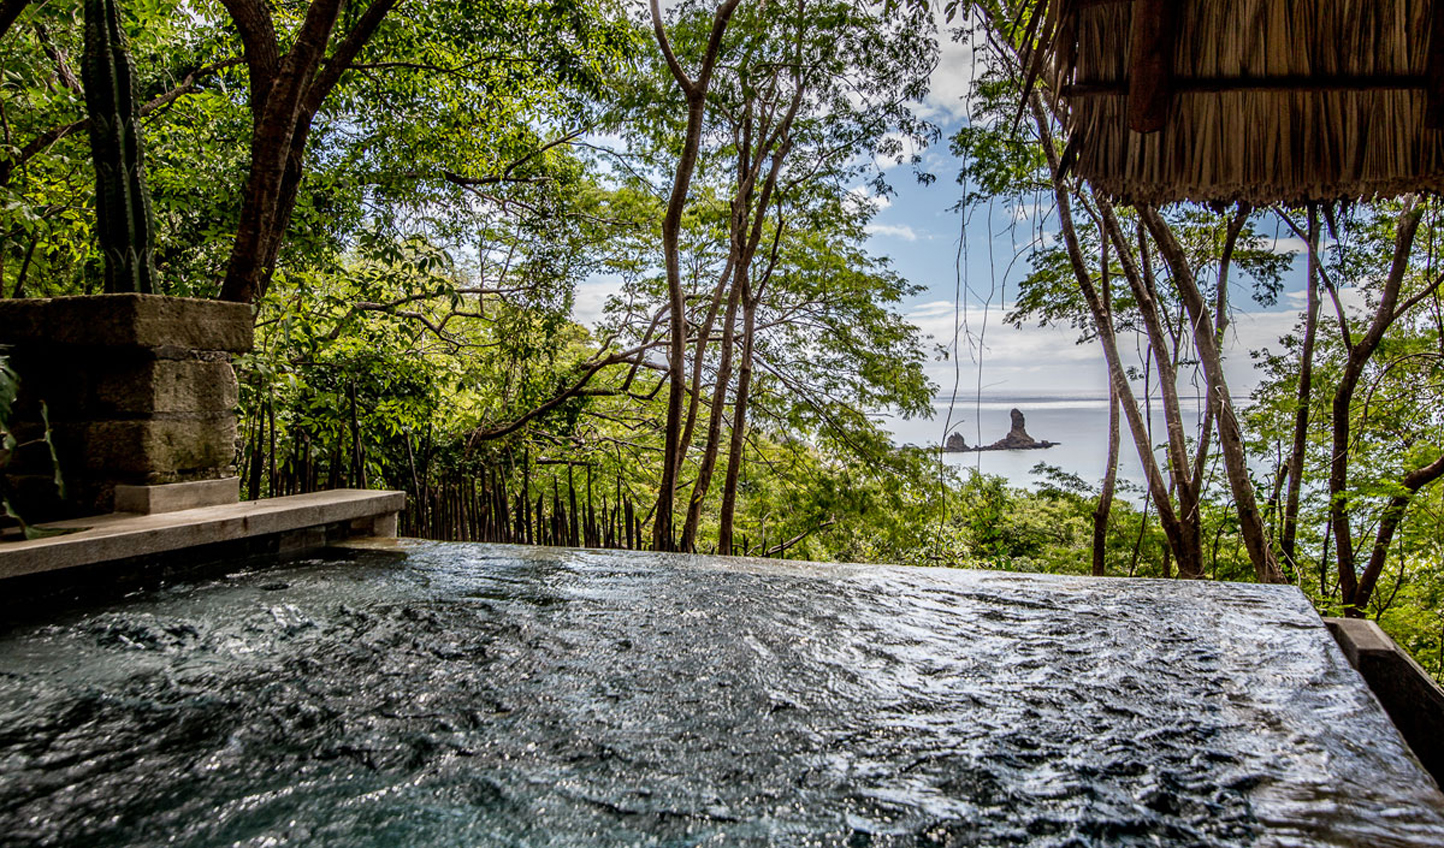 Your own private plunge pool in the heart of the jungle